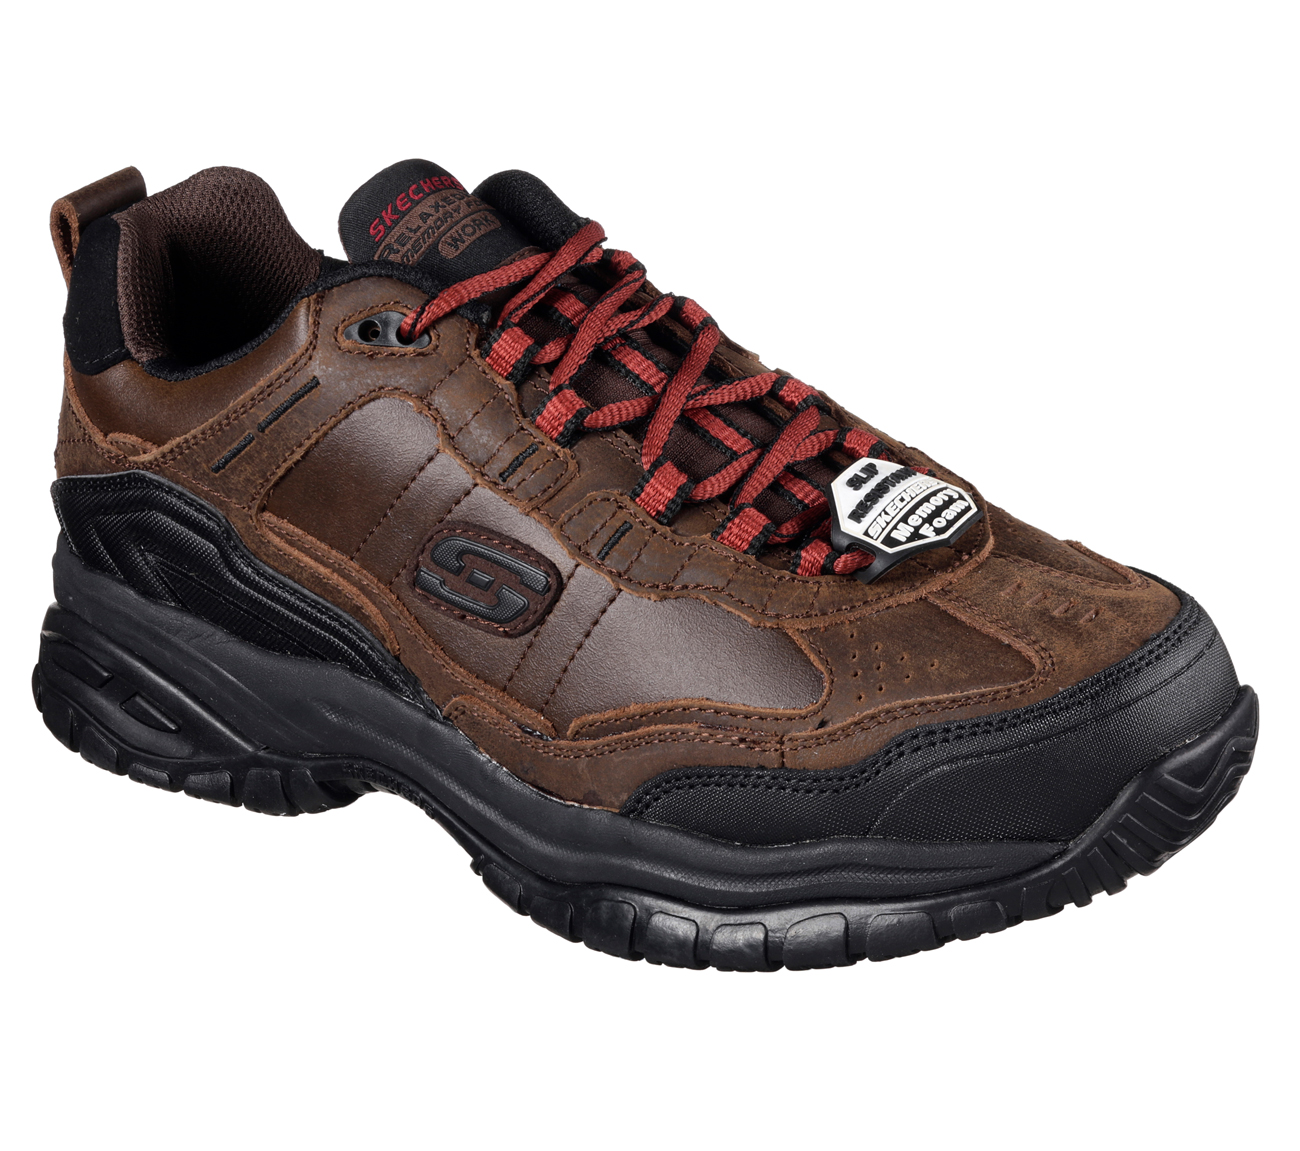 Ease into all day comfort and protection with the SKECHERS Work Relaxed Fit Hartan ST shoe. Smooth durable leather upper in a slip on casual comfort steel toe work moc with stitching and overlay accents. Gel Infused Memory Foam insole. Slip on casual comfort work steel toe shoe/5(60).